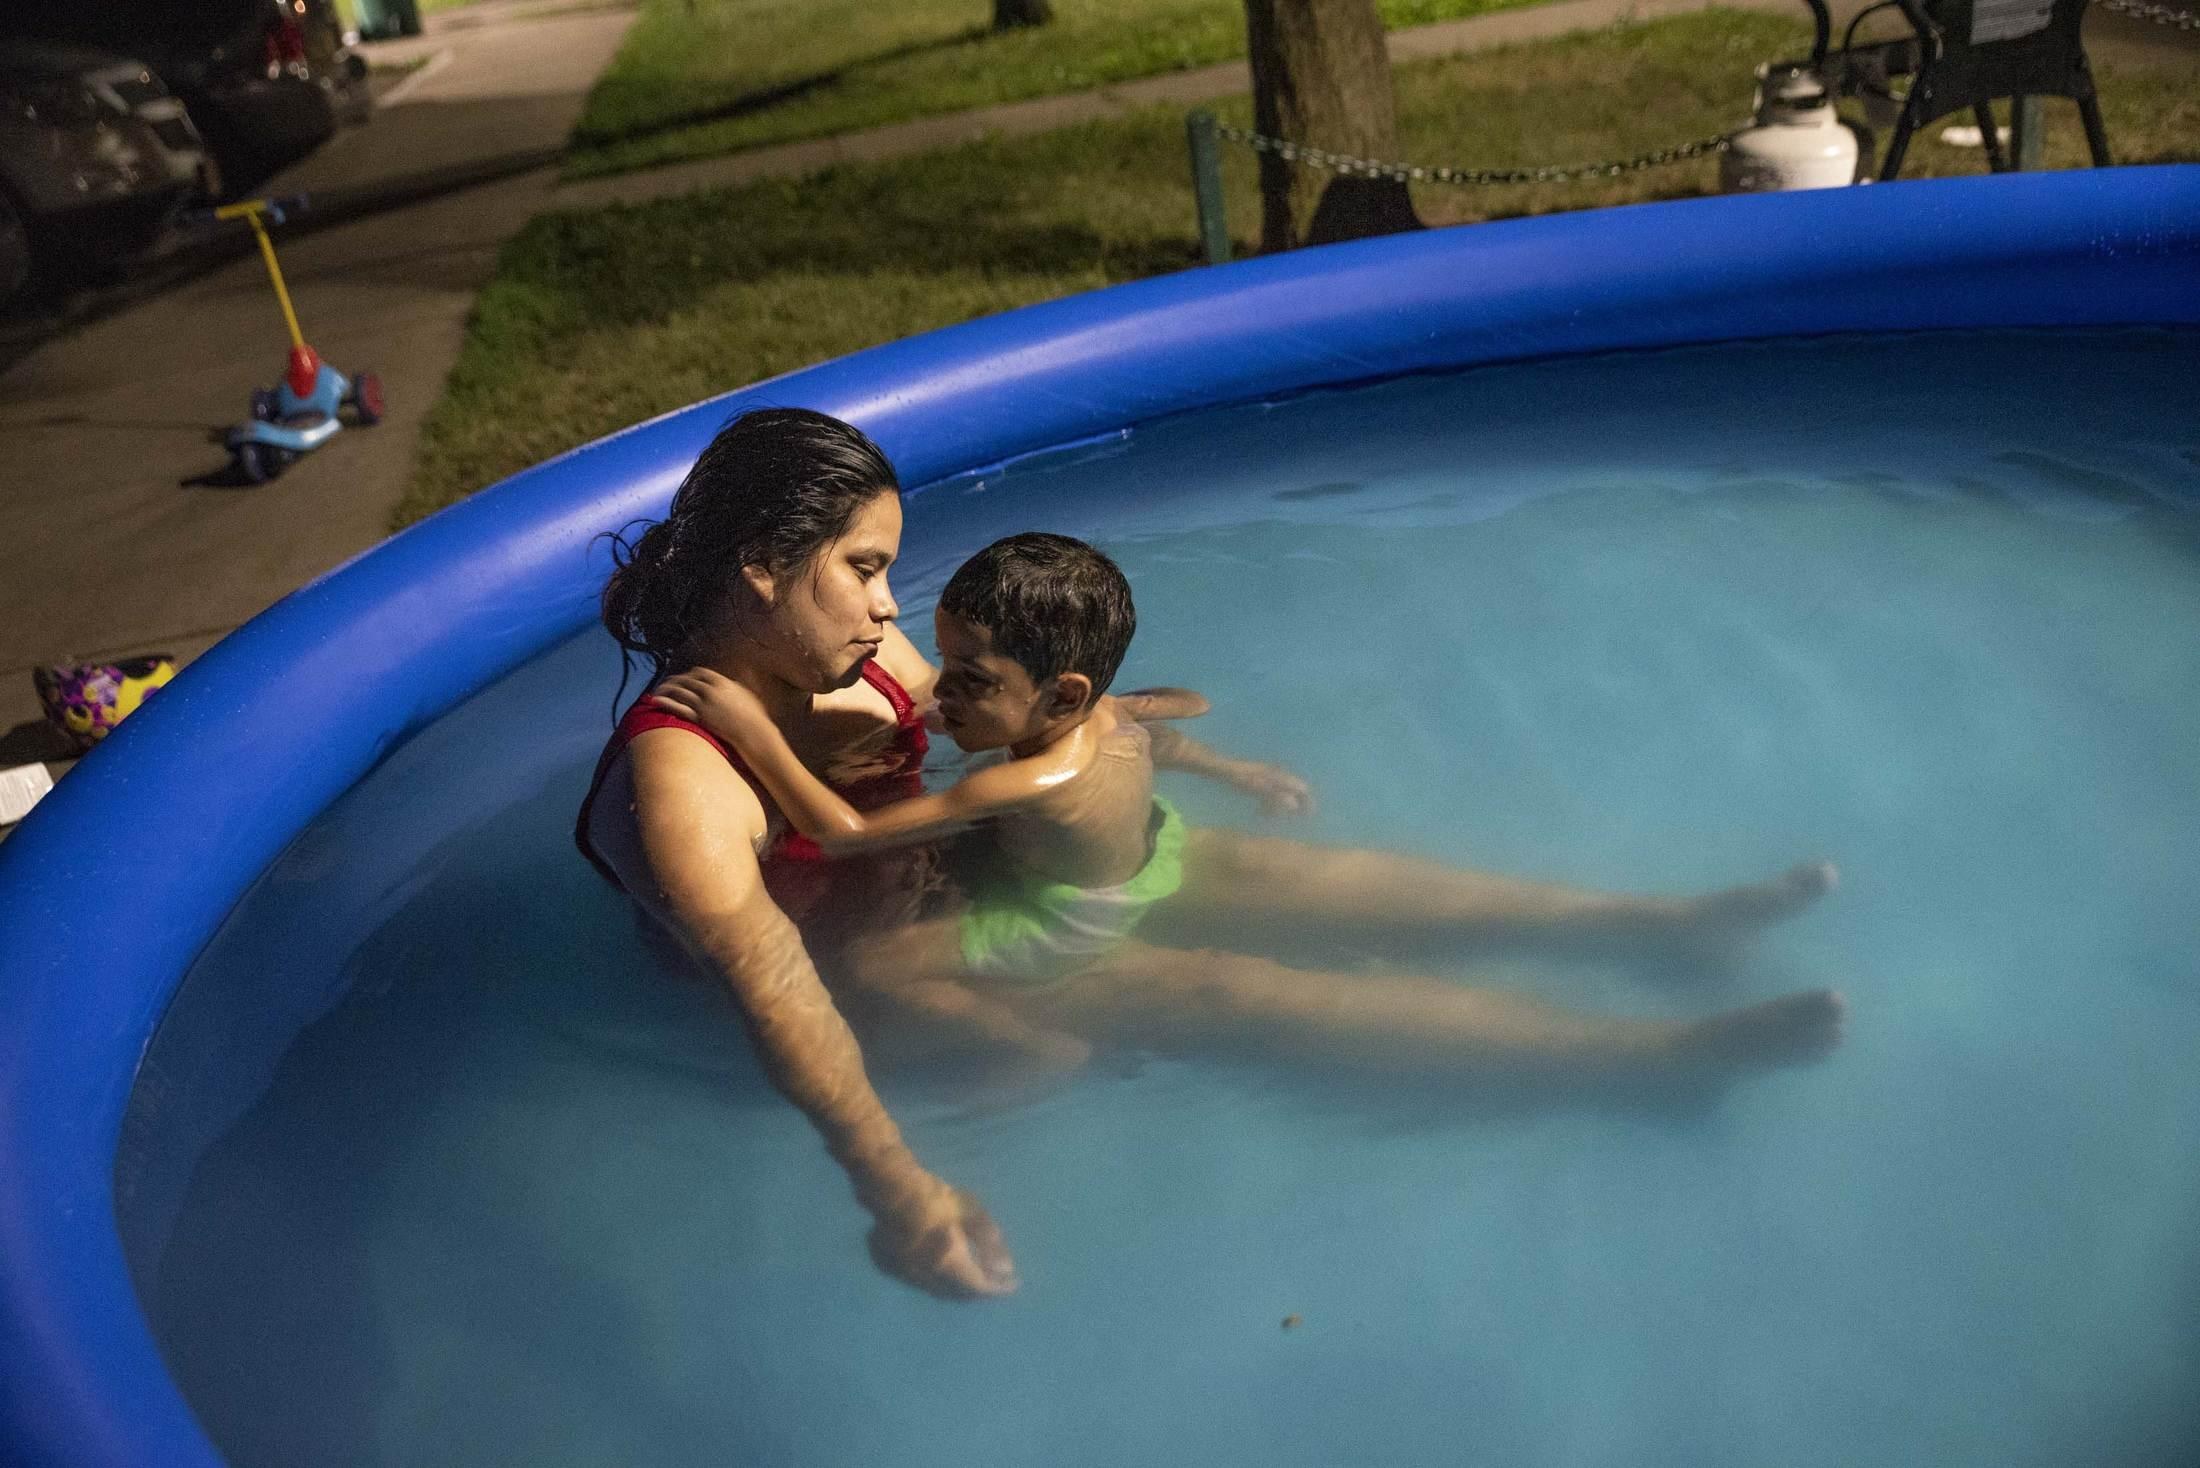 """A series of 90-degree days spill into the comfort of night as the high temperatures bake the city of Syracuse. Carla and her son Jaxiel """"Che Che"""" seek relief with an evening swim."""